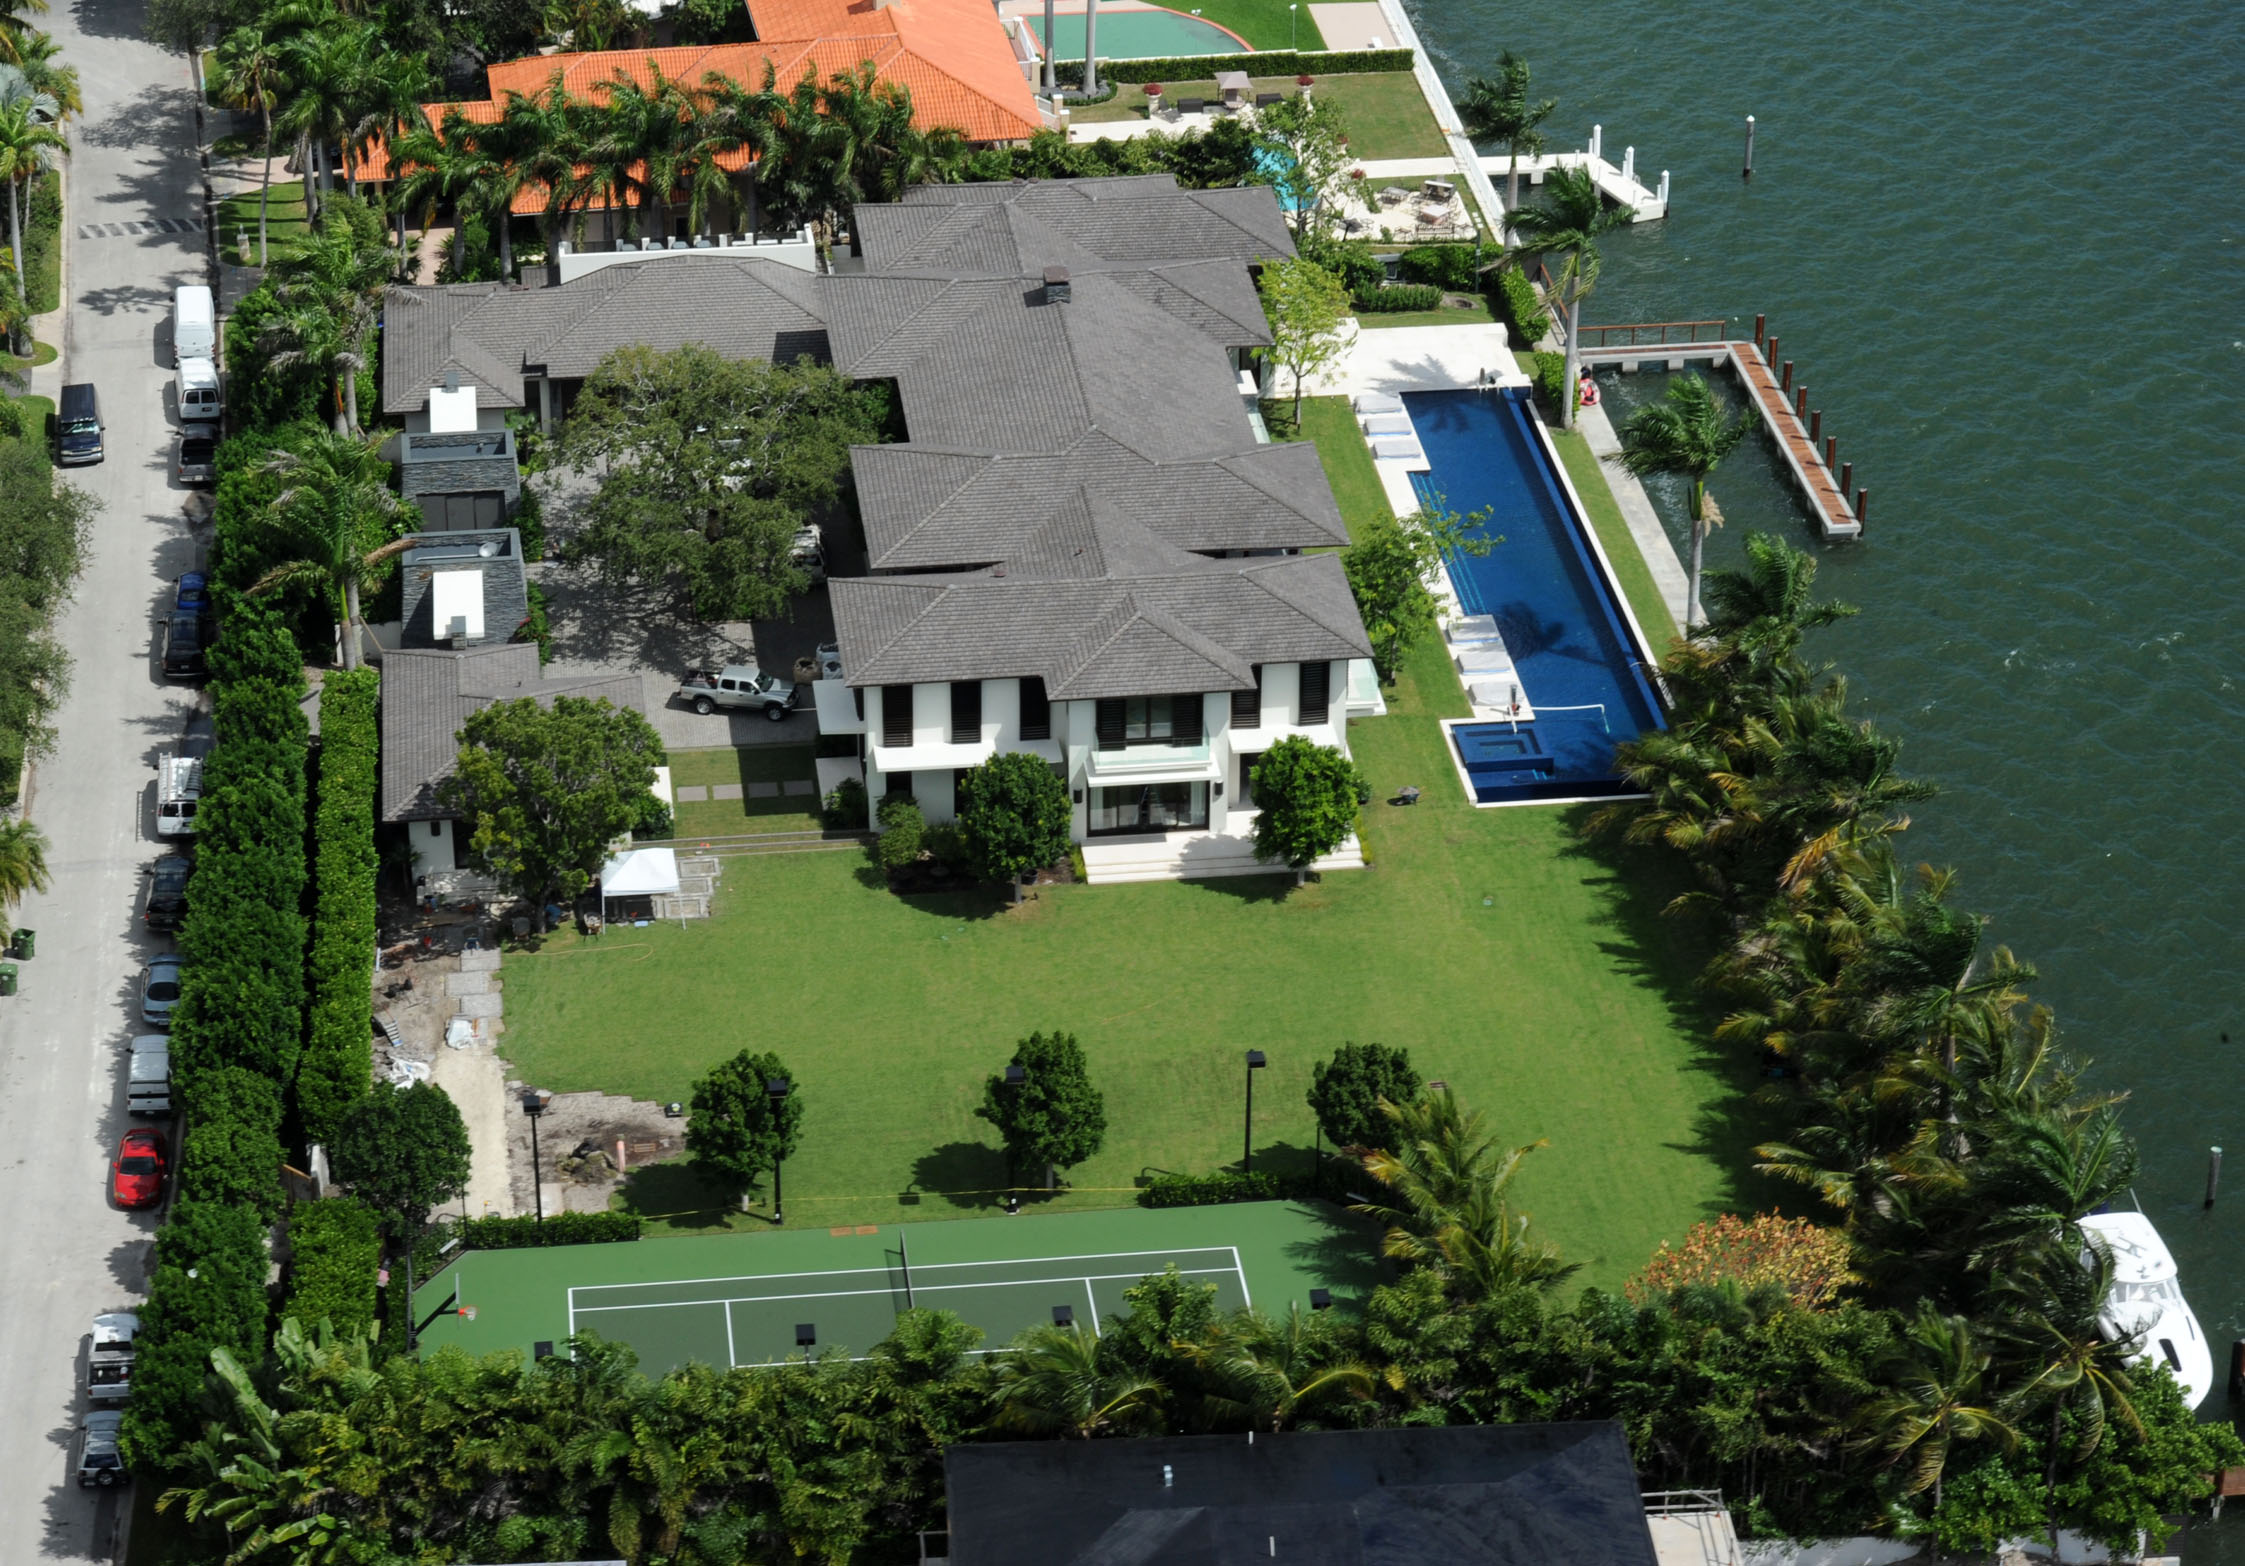 Enrique Iglesias moves into his giant mansion in Miami. The price of the new house at 4535 Sabal Palm Road was slightly more than $26 million! Miami-Dade County records show Iglesias grabbed two waterfront lots with sweeping views of Biscayne Bay and the Miami skyline in 2009 for a total $5 million. He and galpal Anna Kournikova then had a crib believed to be close to 20,000 square feet of sheer luxury built on the property, after the two existing houses were leveled. Tons of landscapers were seen on the property today finishing up the landscaping around the entire property. Pictured: Enrique Iglesias new home in Miami Ref: SPL622796 071013 Picture by: Jason Winslow / Splash News Splash News and Pictures Los Angeles:310-821-2666 New York: 212-619-2666 London: 870-934-2666 photodesk@splashnews.com